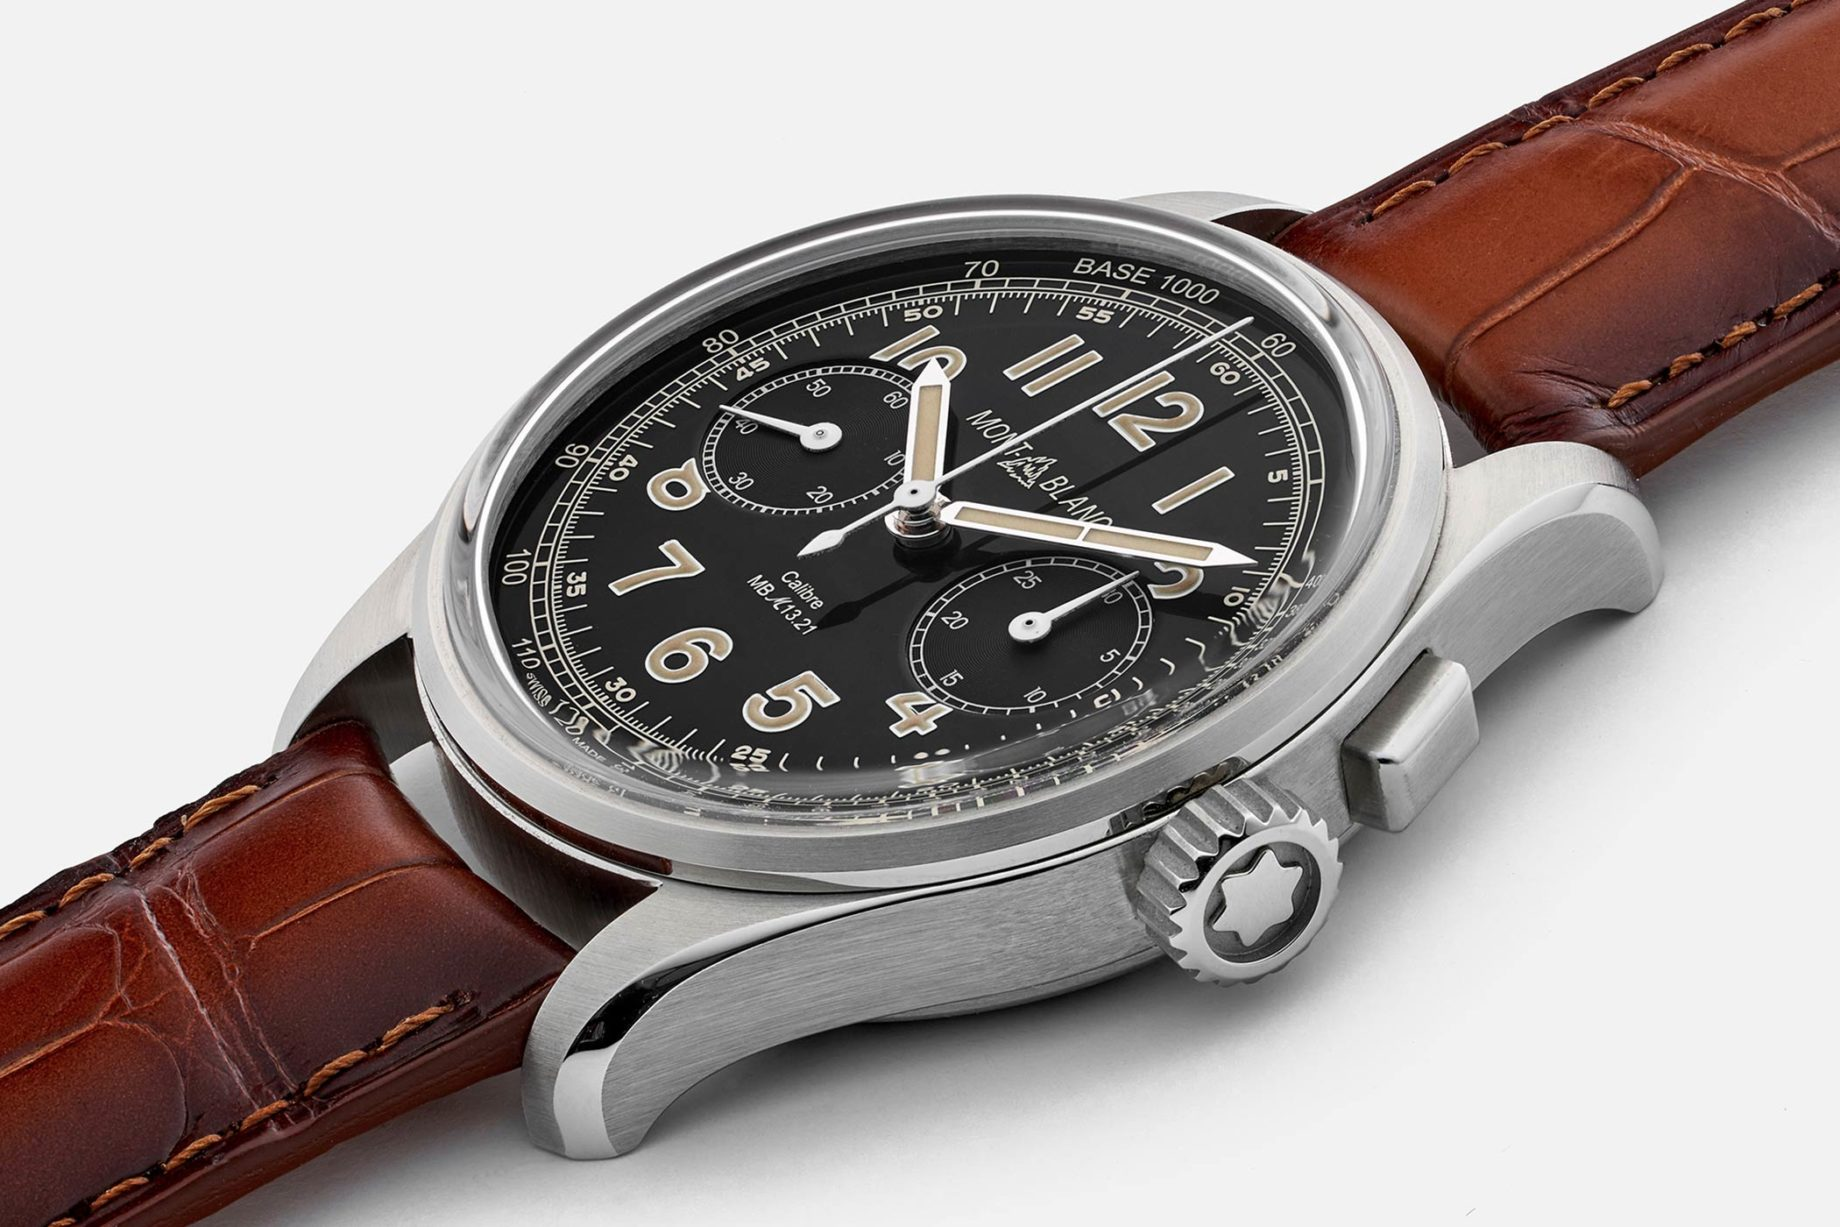 Montblanc 1858 Monopusher Limited Edition for Hodinkee